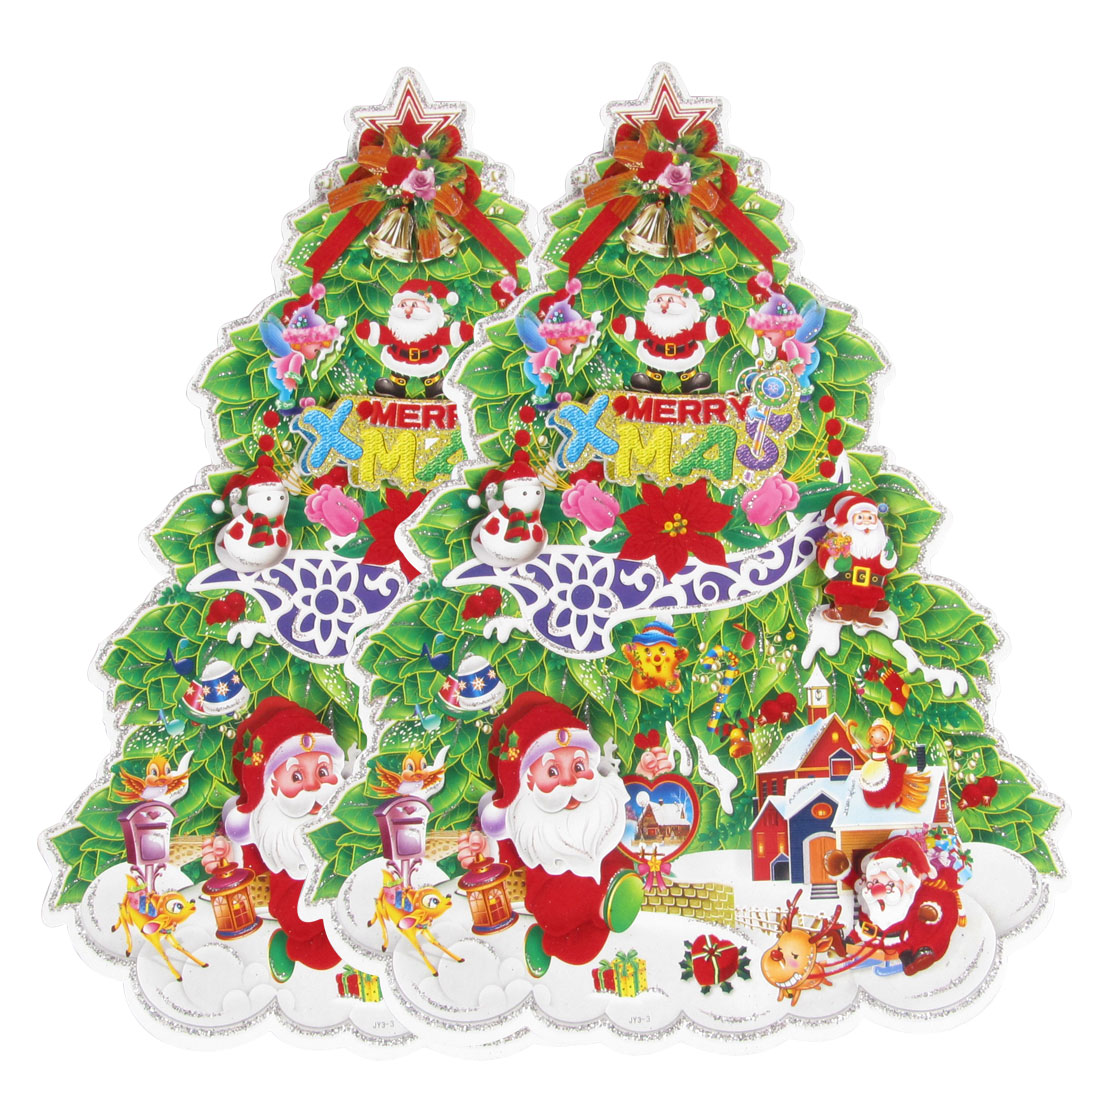 2 Pcs Santa Claus Snowman Decor Christmas Tree Design Wall Decals 400mm x 525mm